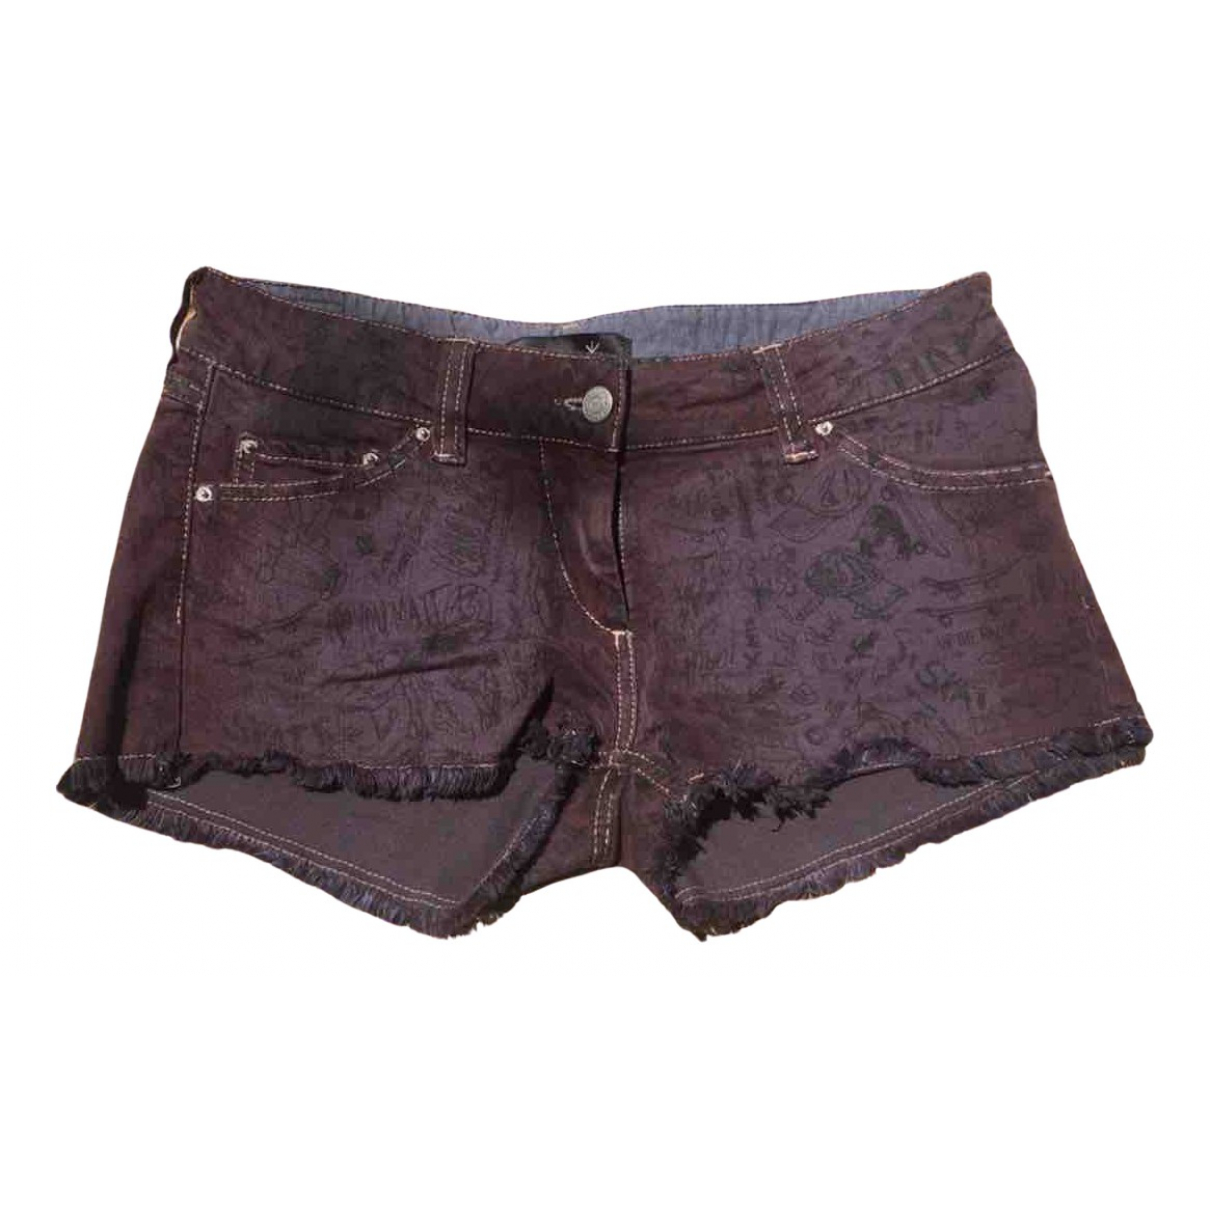 Isabel Marant \N Purple Denim - Jeans Shorts for Women 36 FR